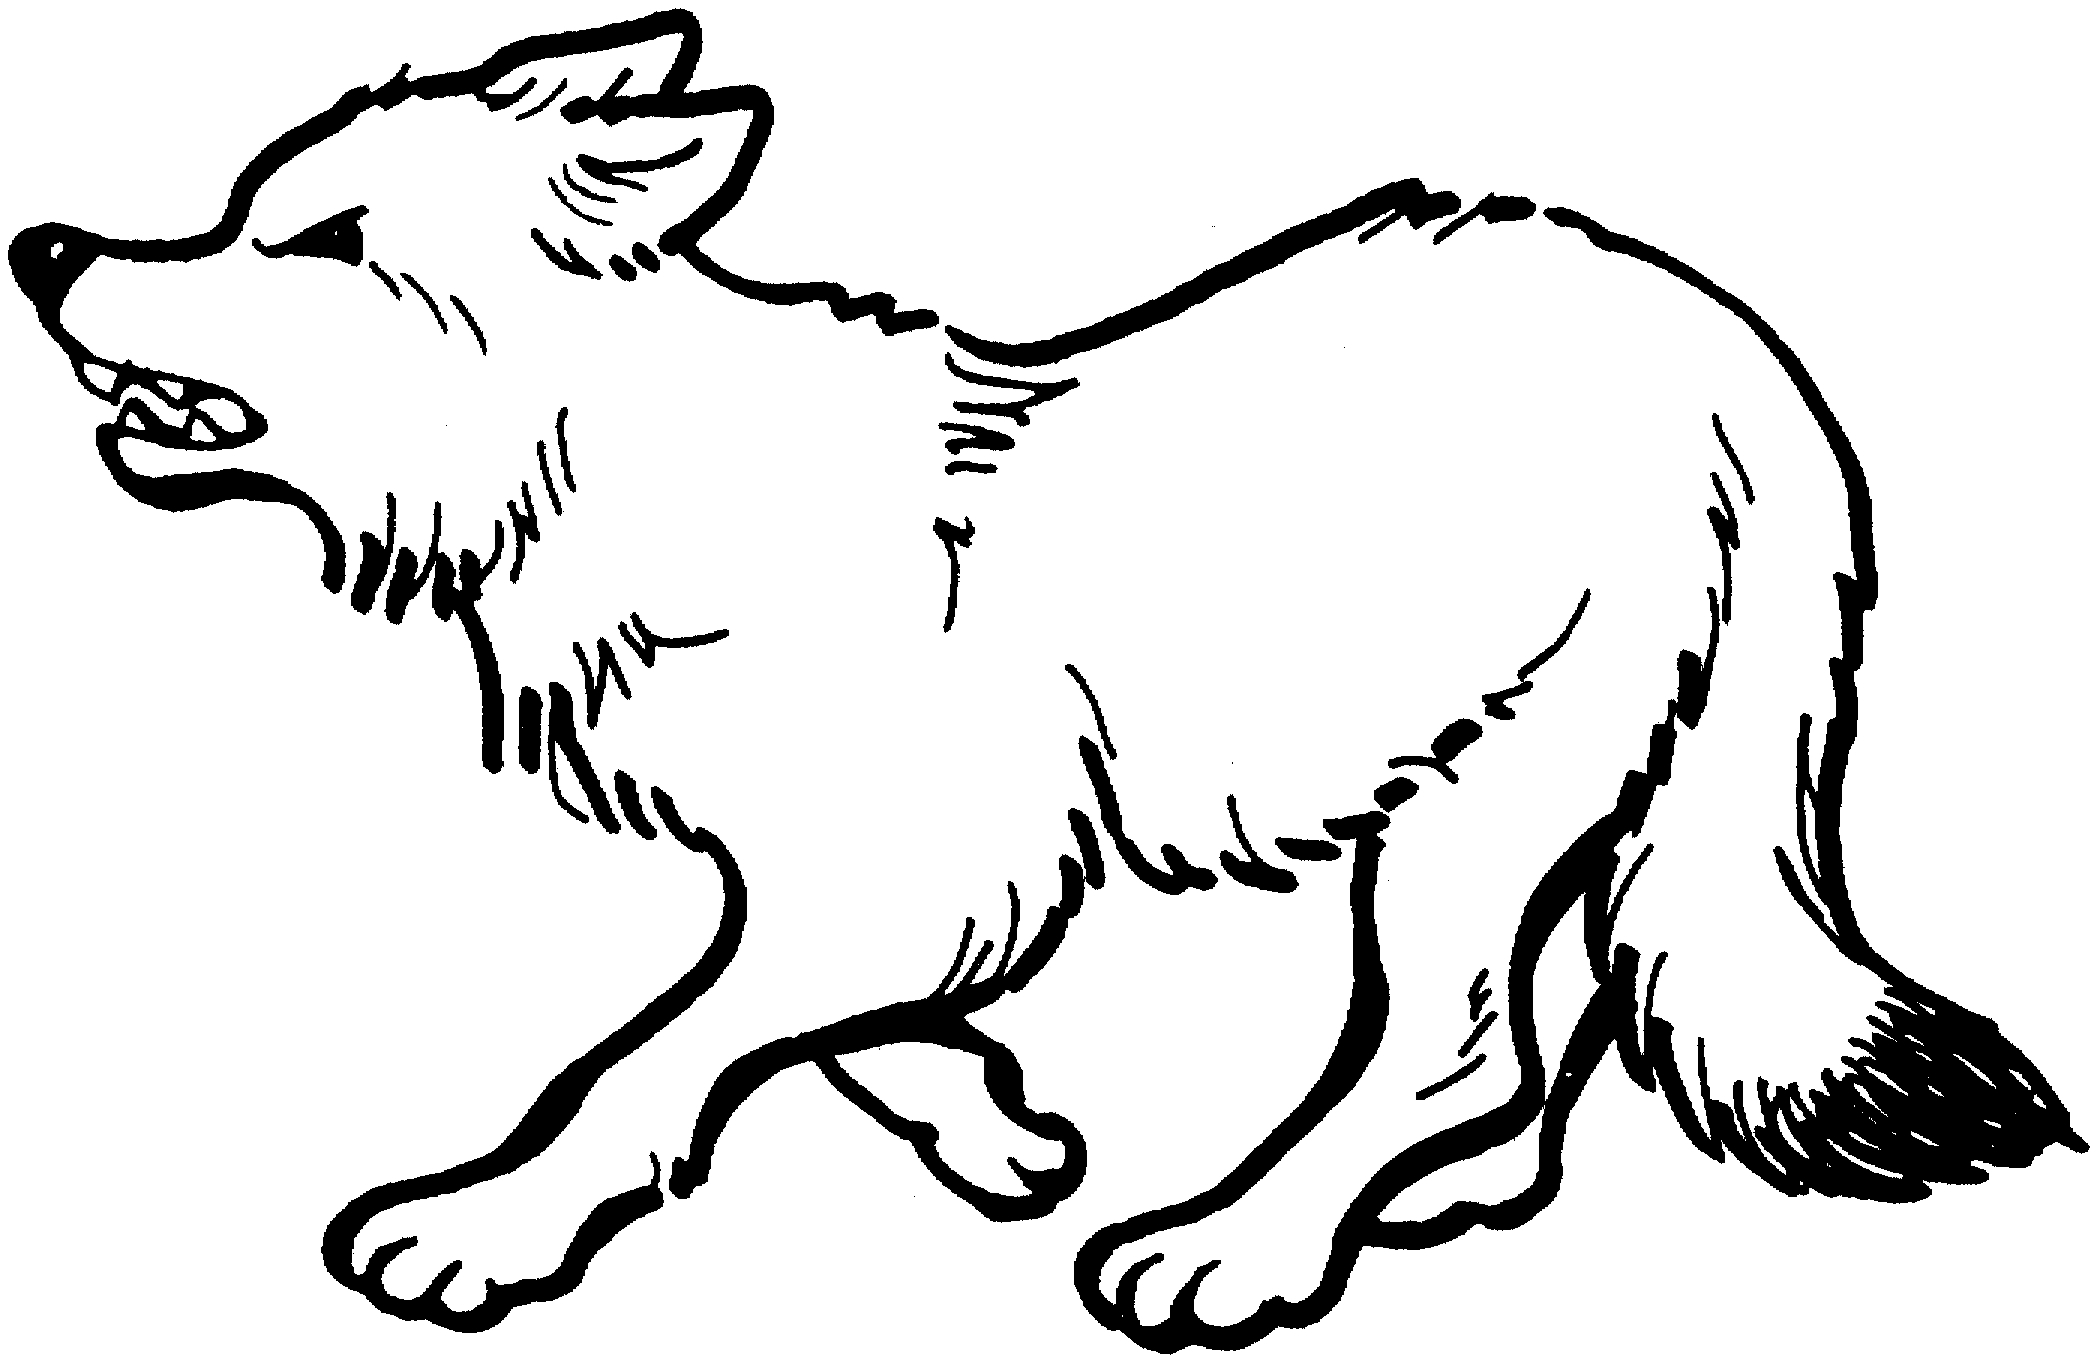 Wolves Coloring Pages Coloringsuite Free Baby Wolf 5 Download Of Wolves Coloring Pages Wolf Coloring Pages Free Coloring Pages Collection